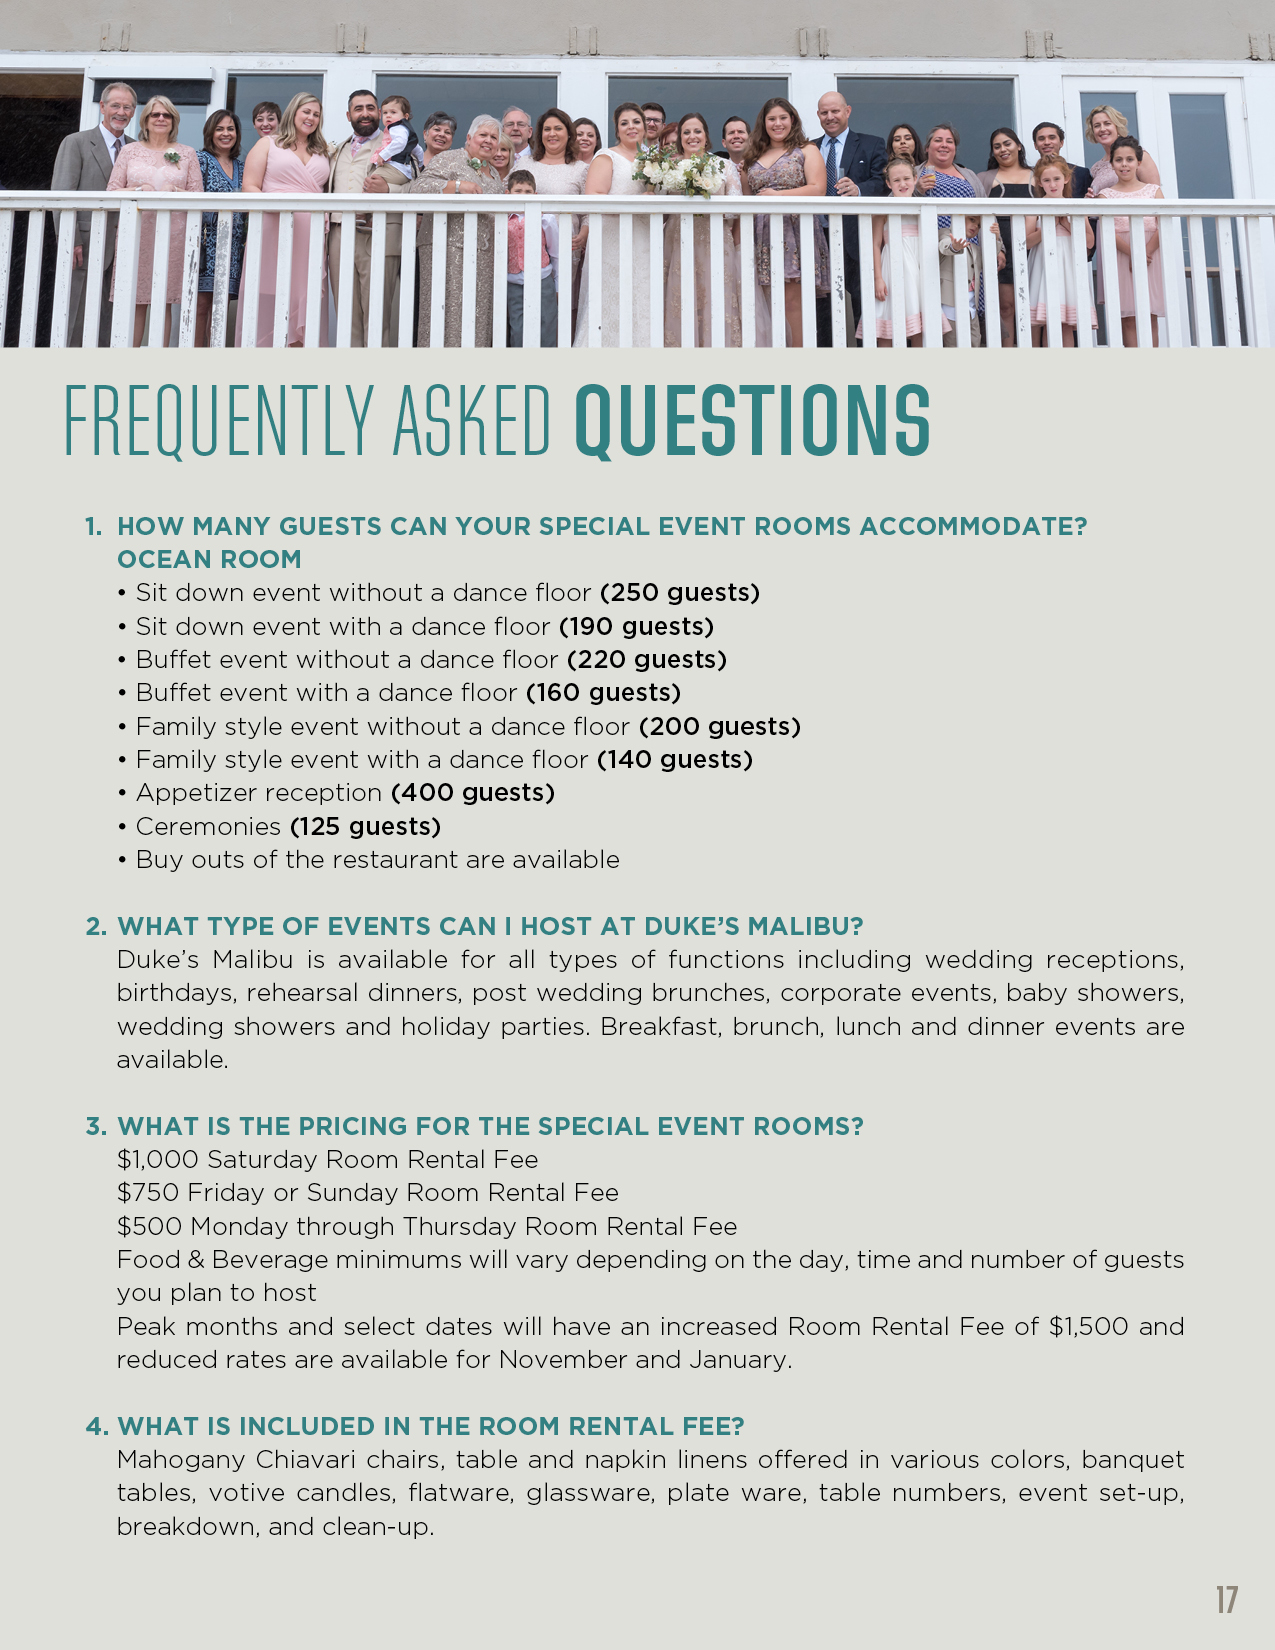 Event frequently asked questions